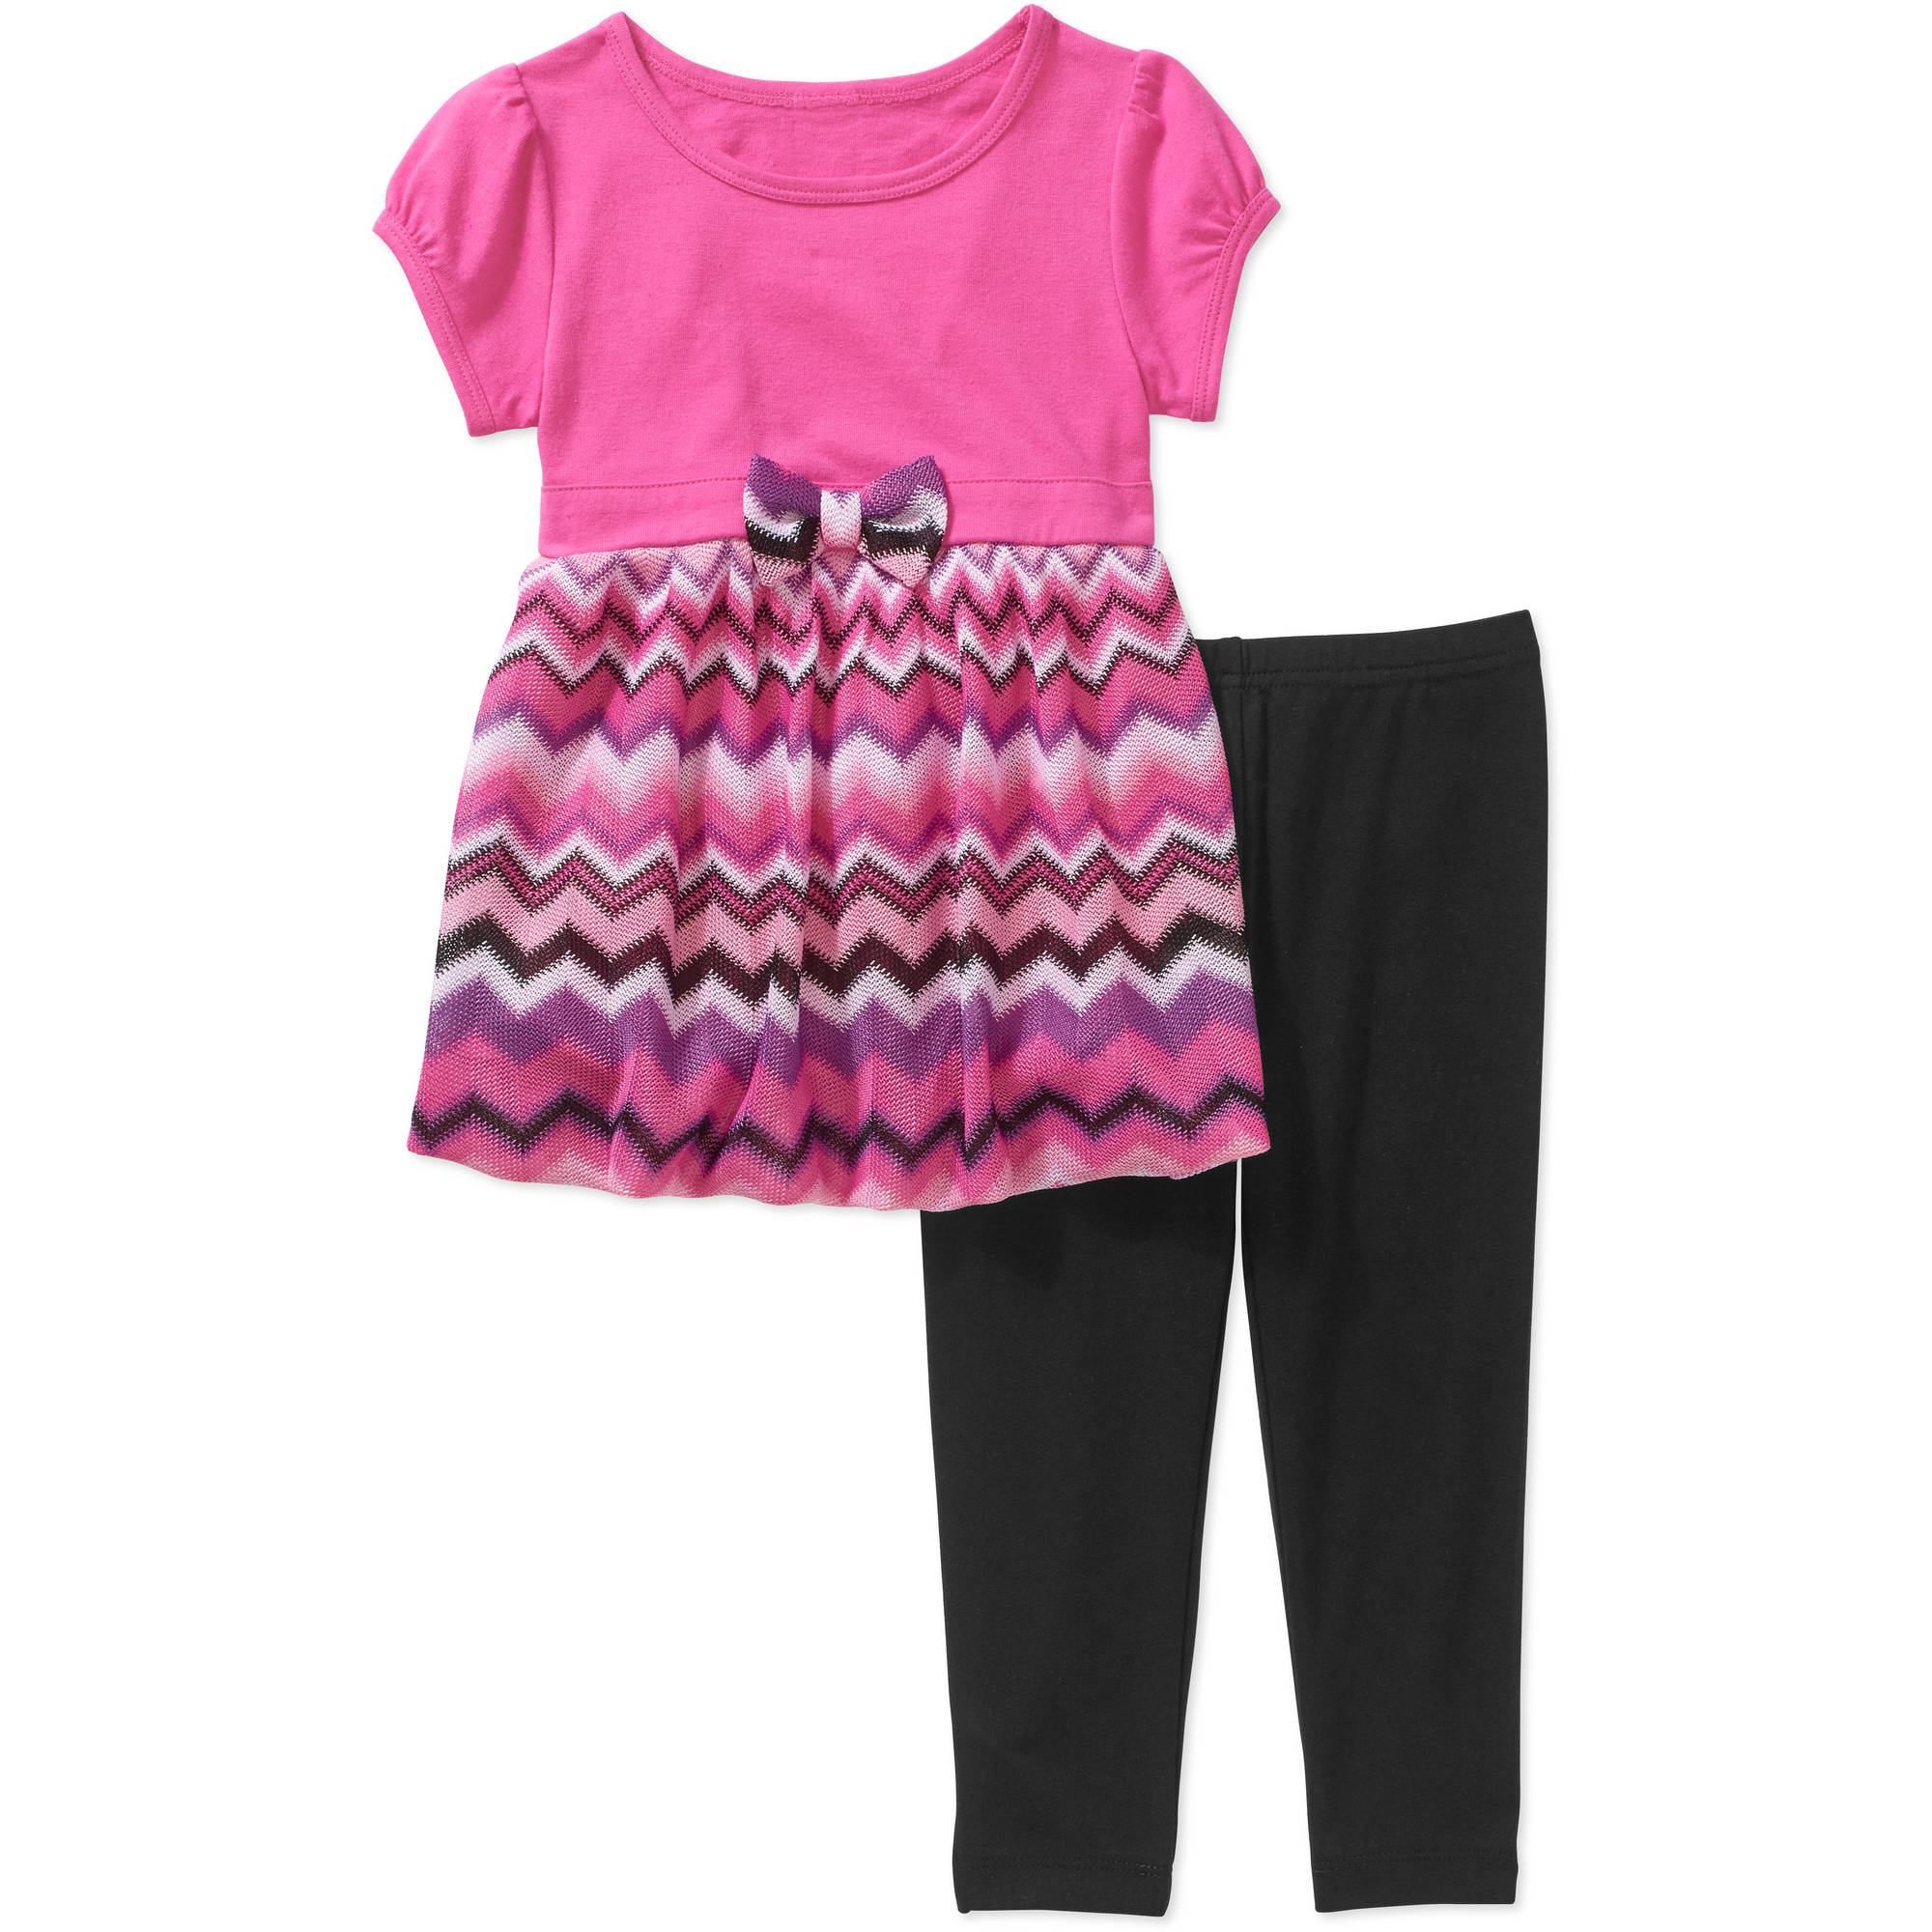 Healthtex Toddler Girls' Bubble Sweater Knit Tunic and Leggings Outfit Set